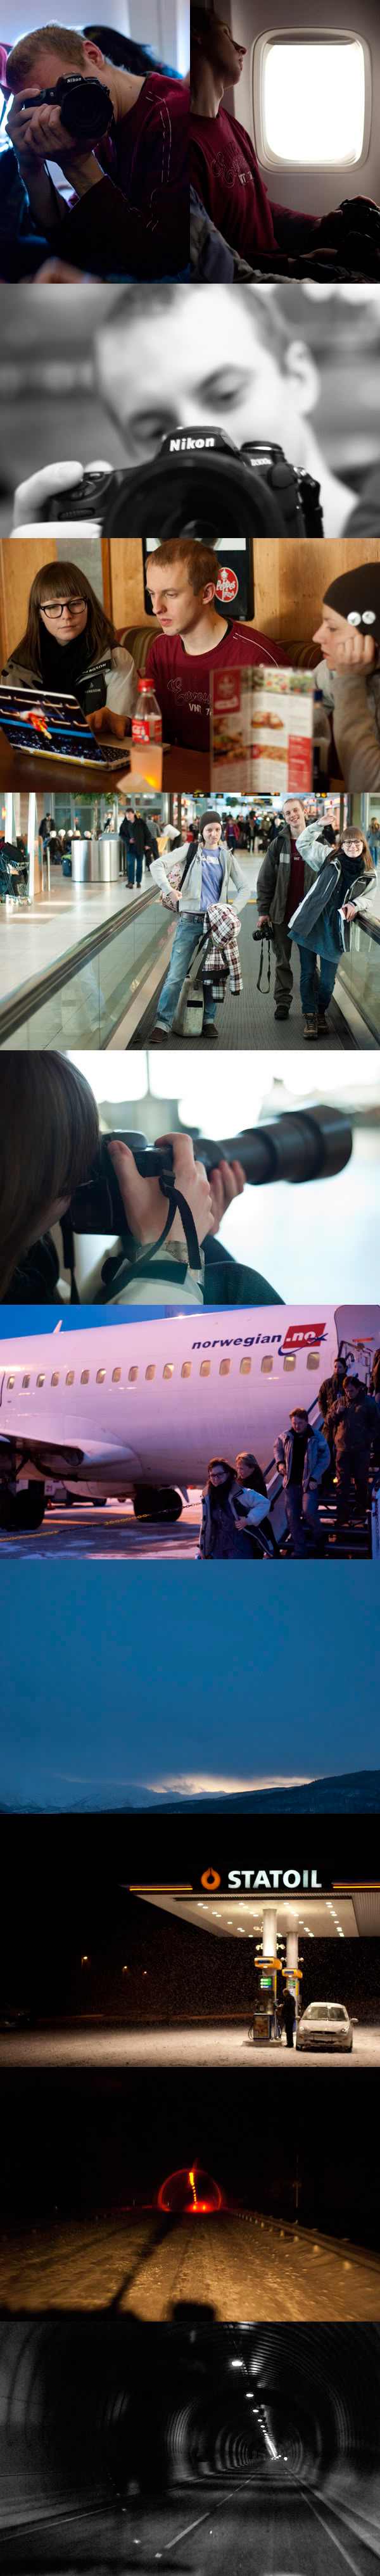 Samolot, airplane, Norwegia, Norway, Szkola, School, Stypendium, Travel, Podroz.